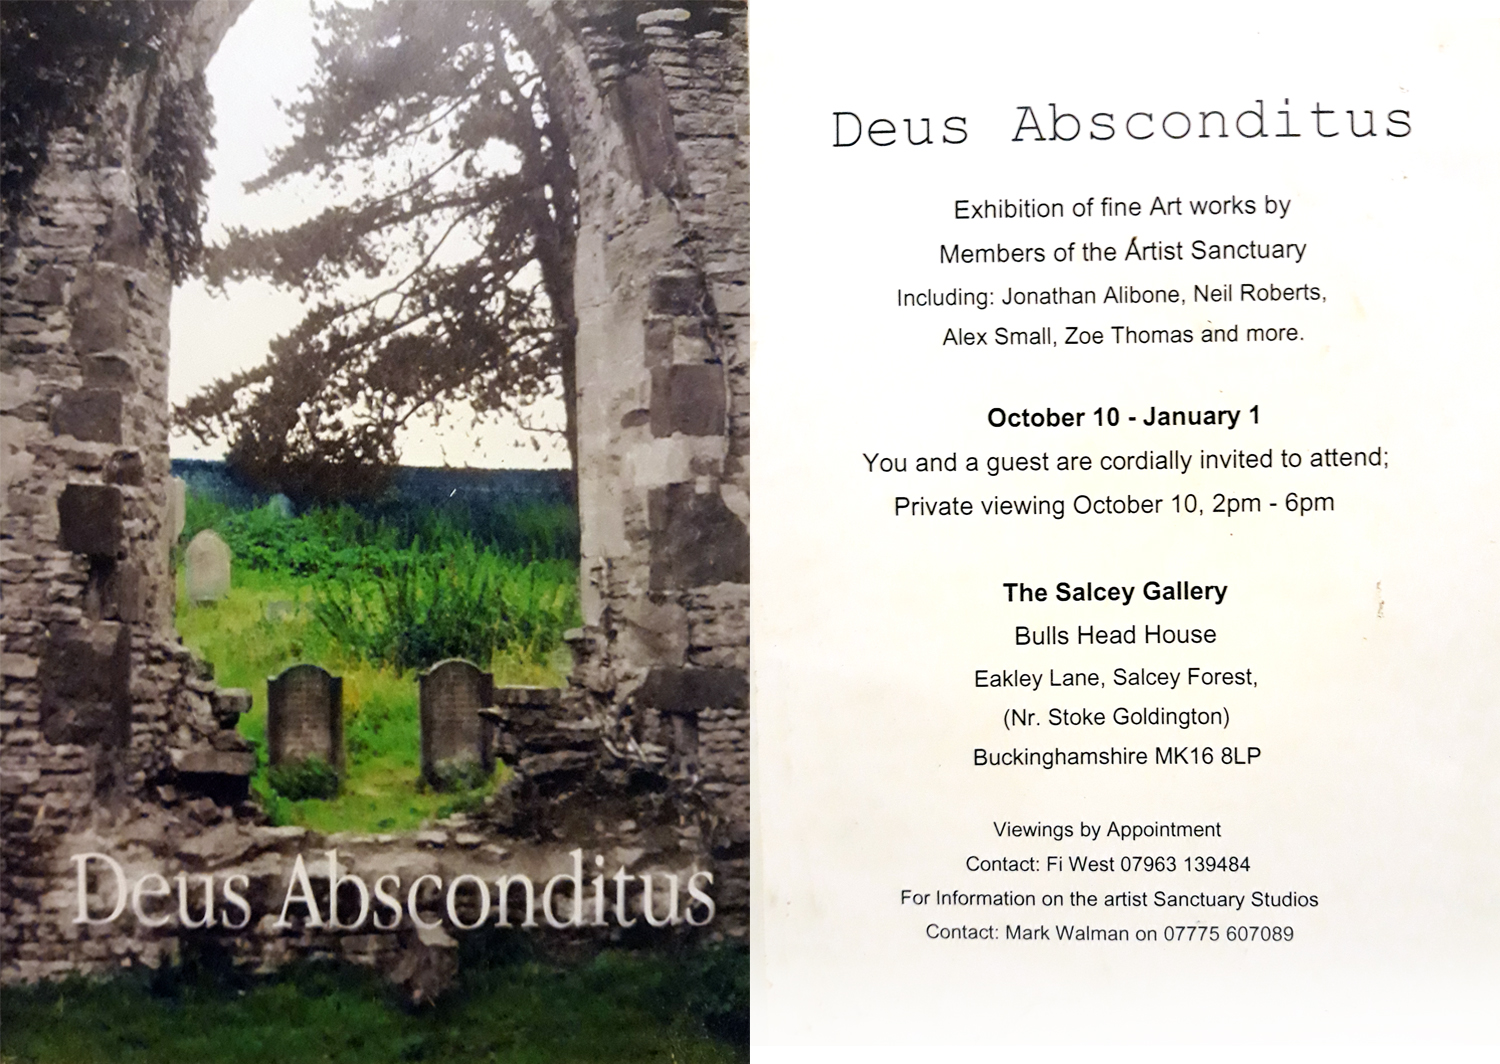 Deus Absonditus - The Salcey Gallery (2007)